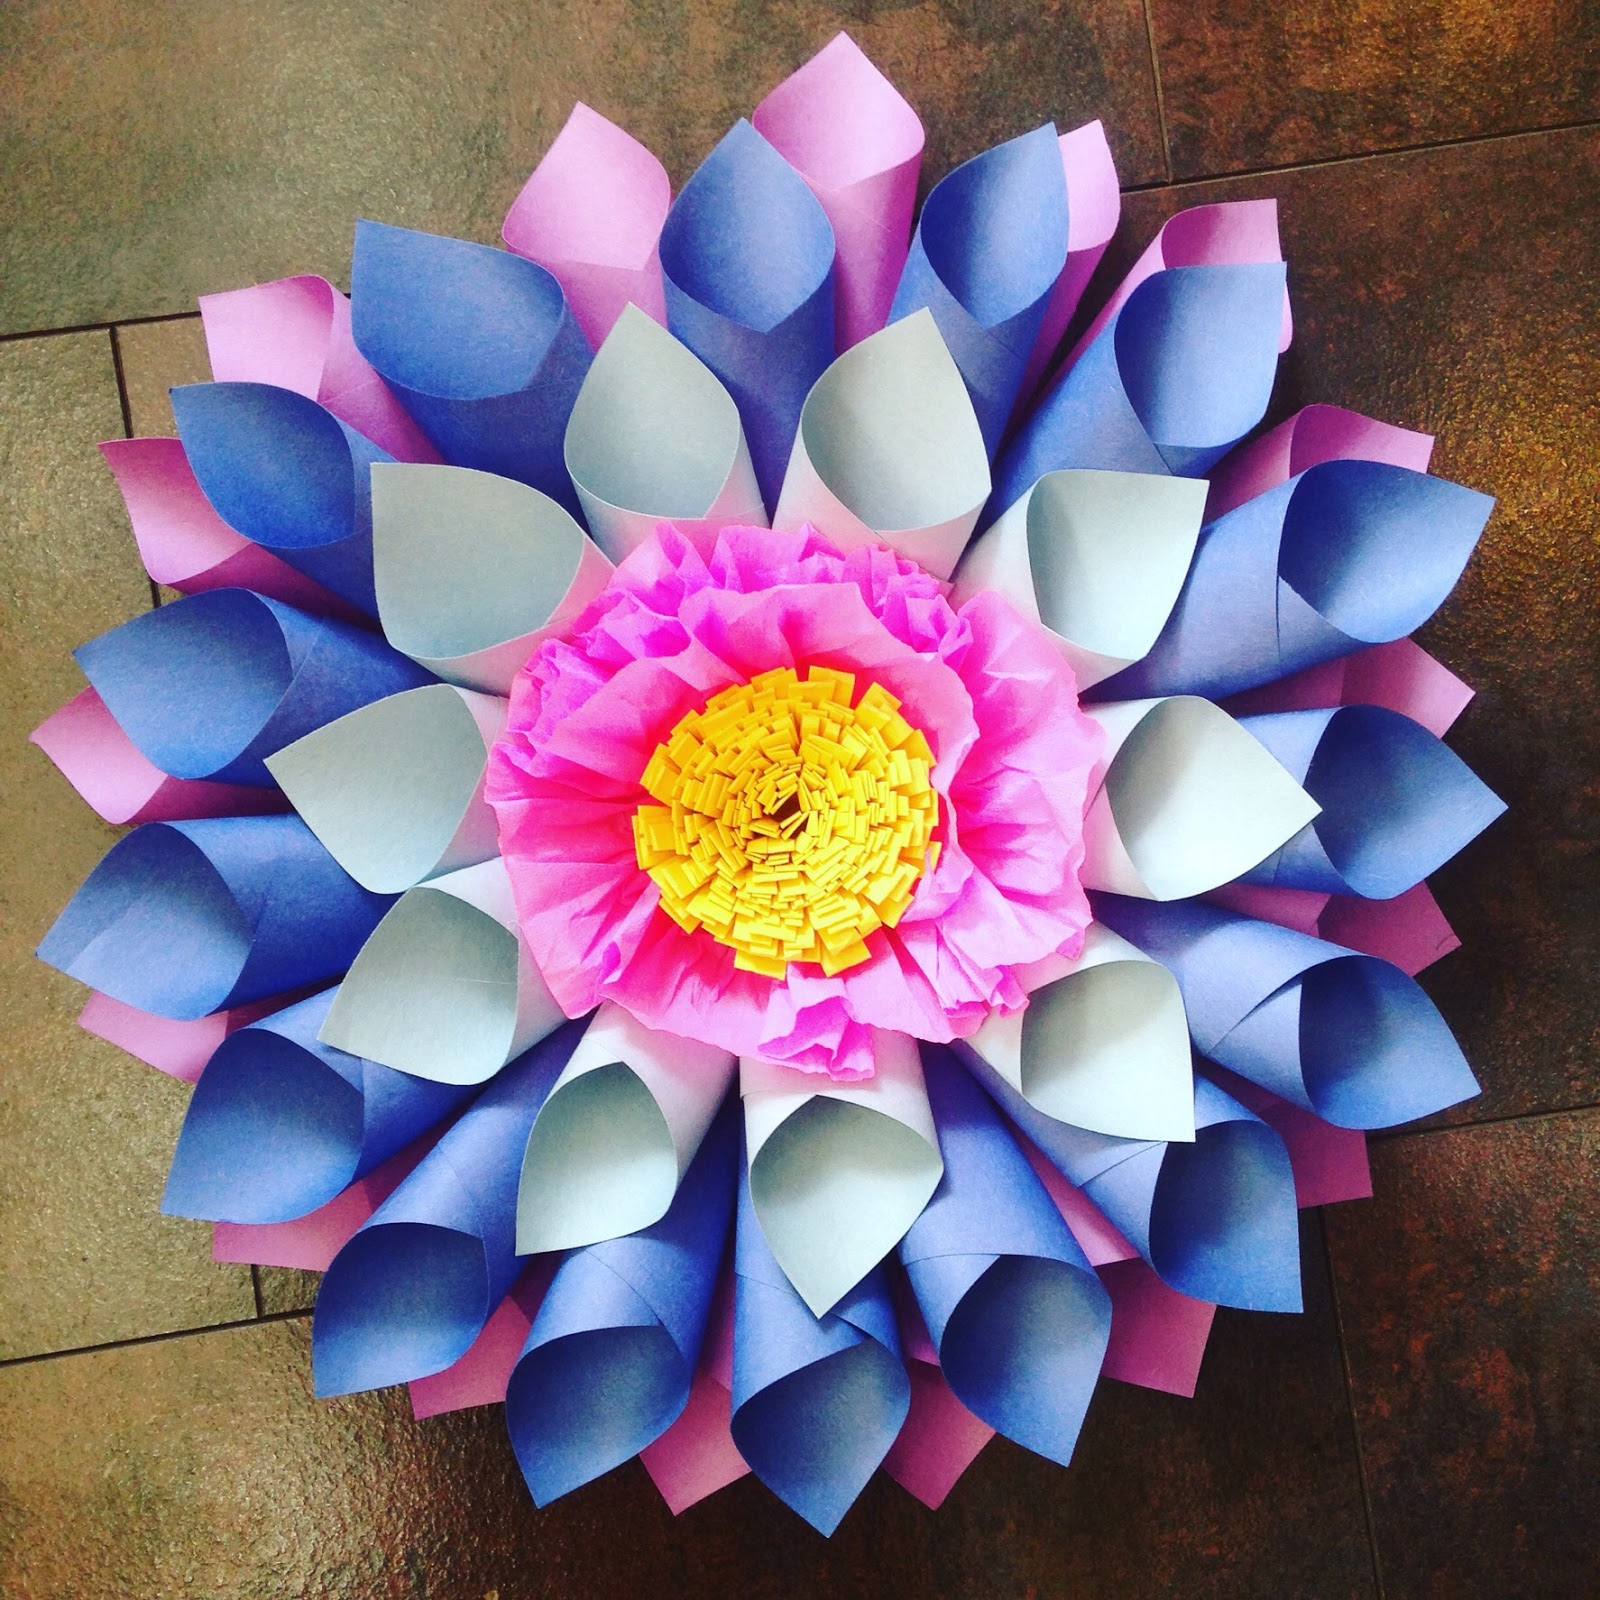 Crafty Ady Making Very Large Paper Flowers